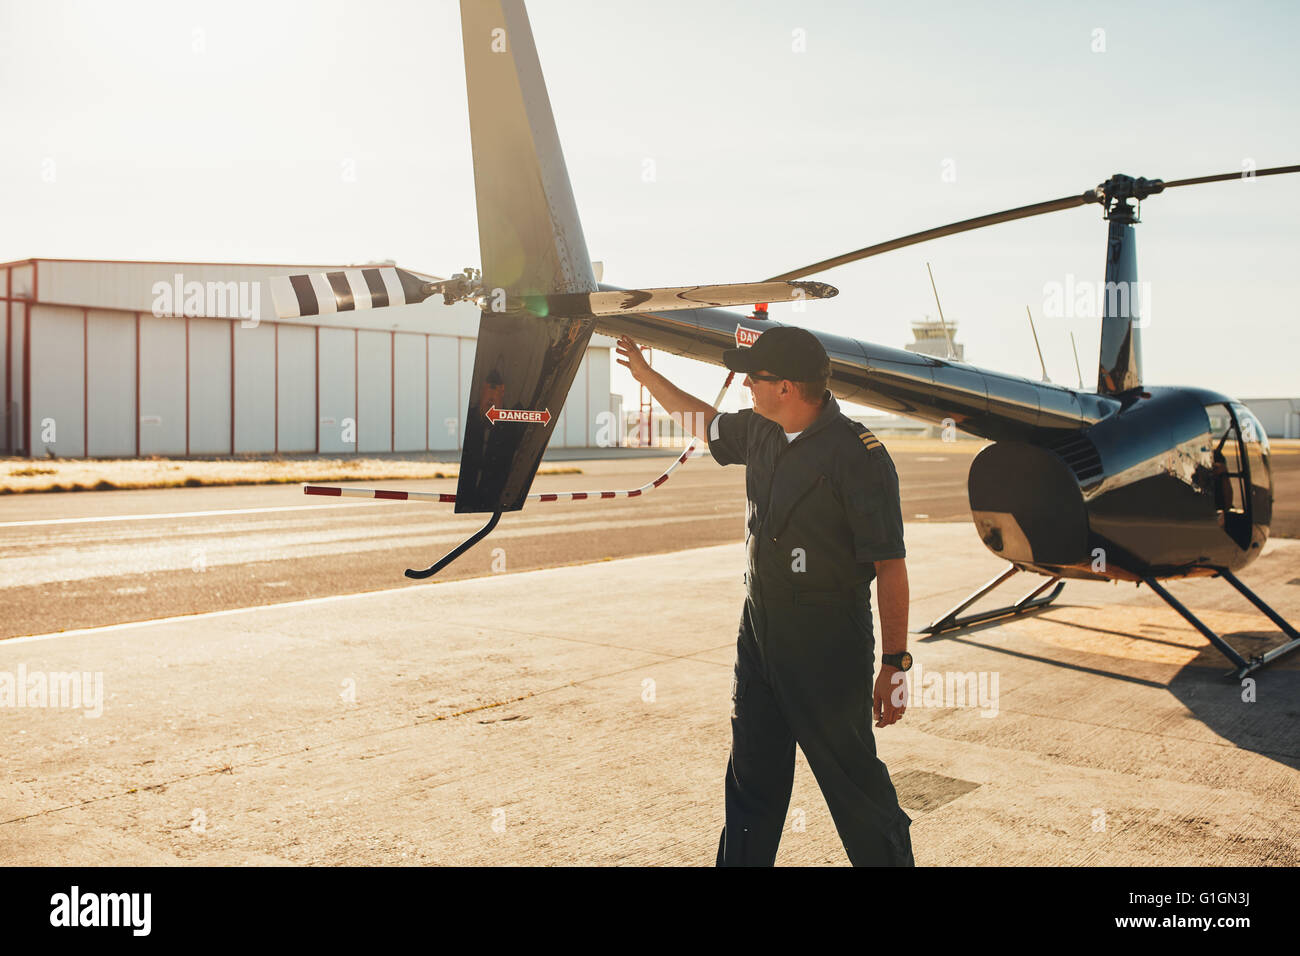 Pilot checking tail wings helicopter during preflight checklist on a sunny day. Engineer doing pre flight inspection. - Stock Image